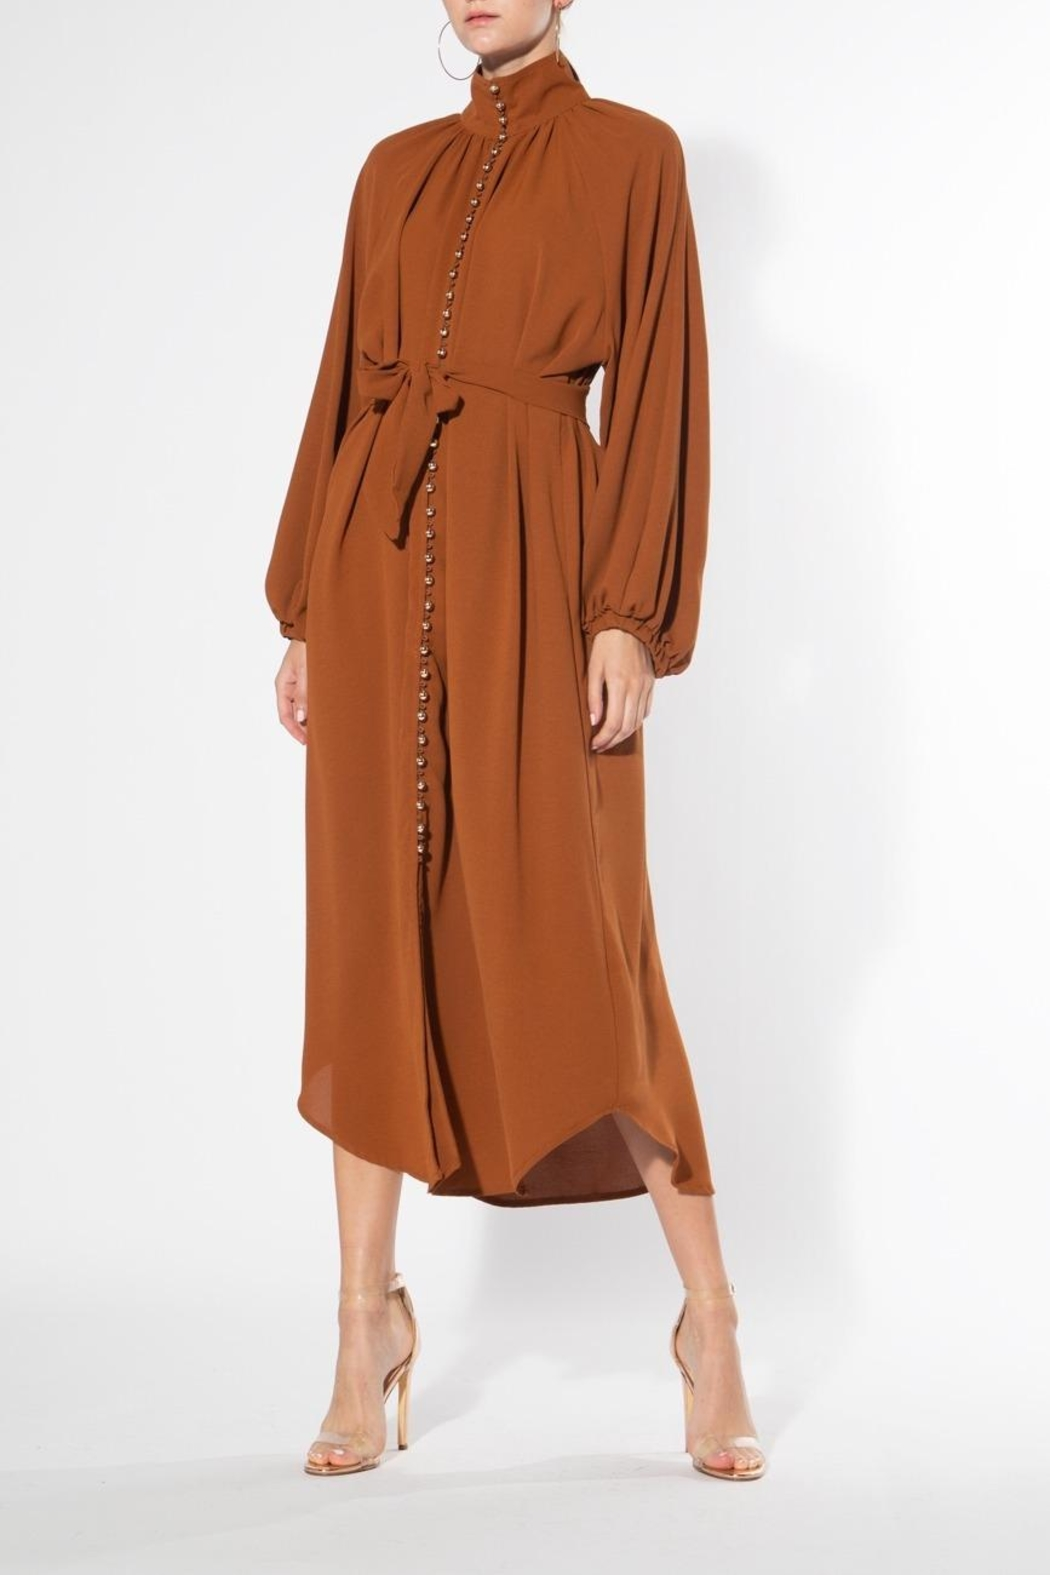 BEULAH STYLE Cinnamon Midi Dress - Front Cropped Image